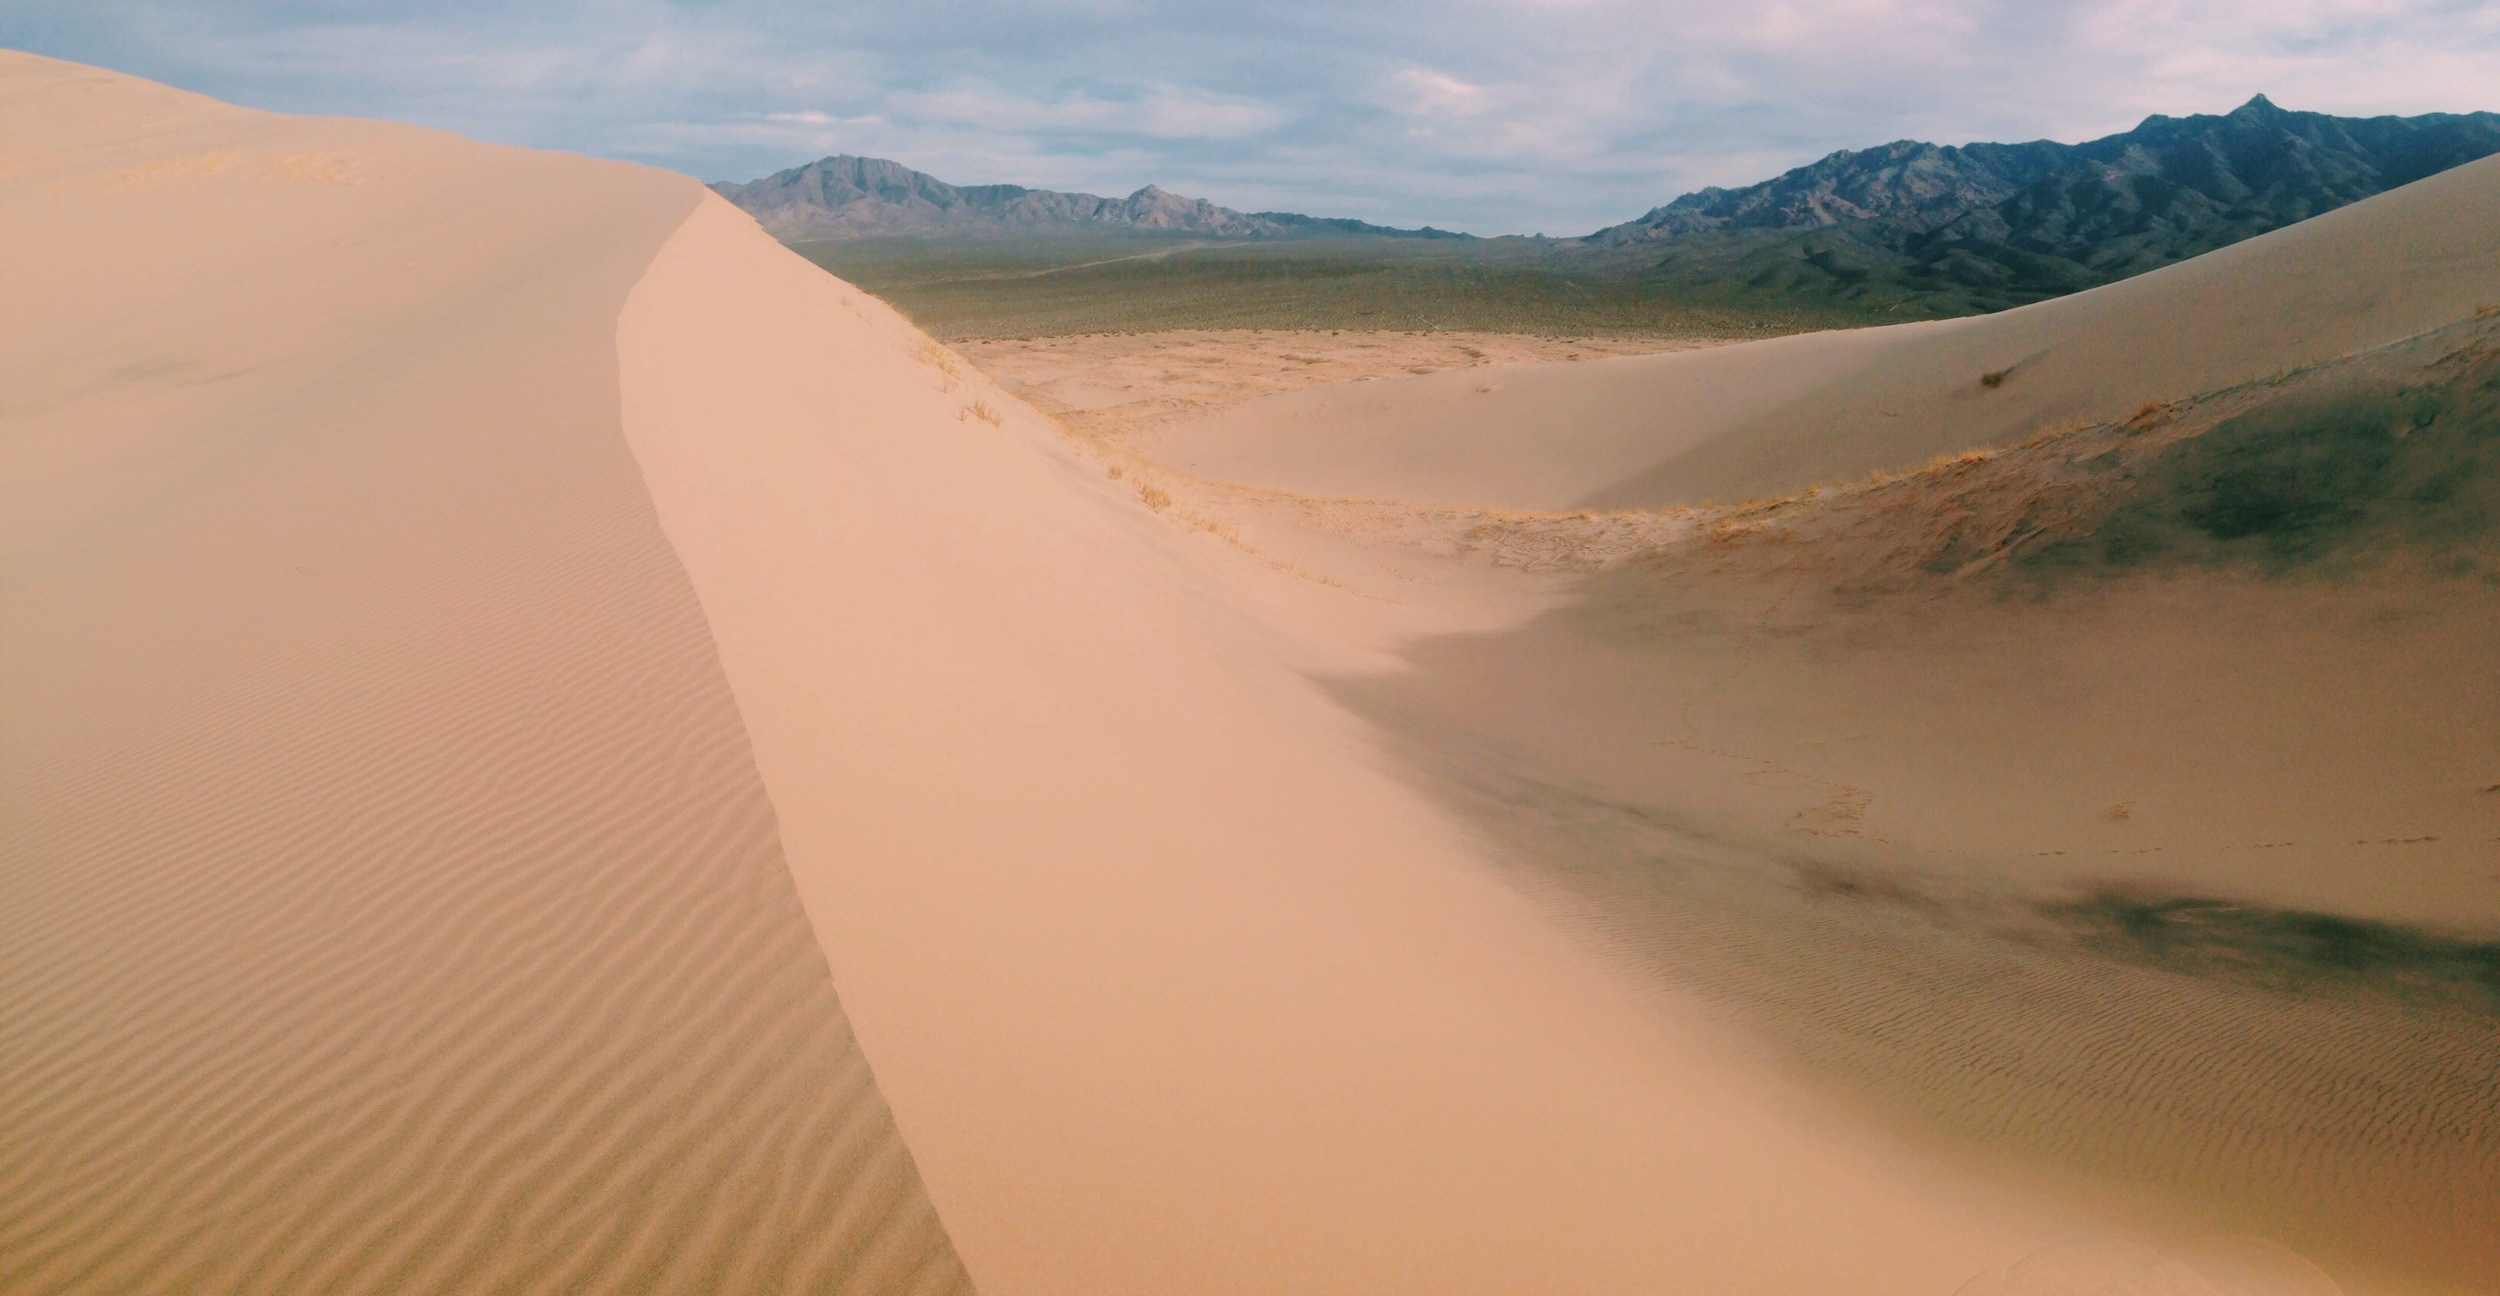 Kelso Dunes, with Granite Mountains in the background